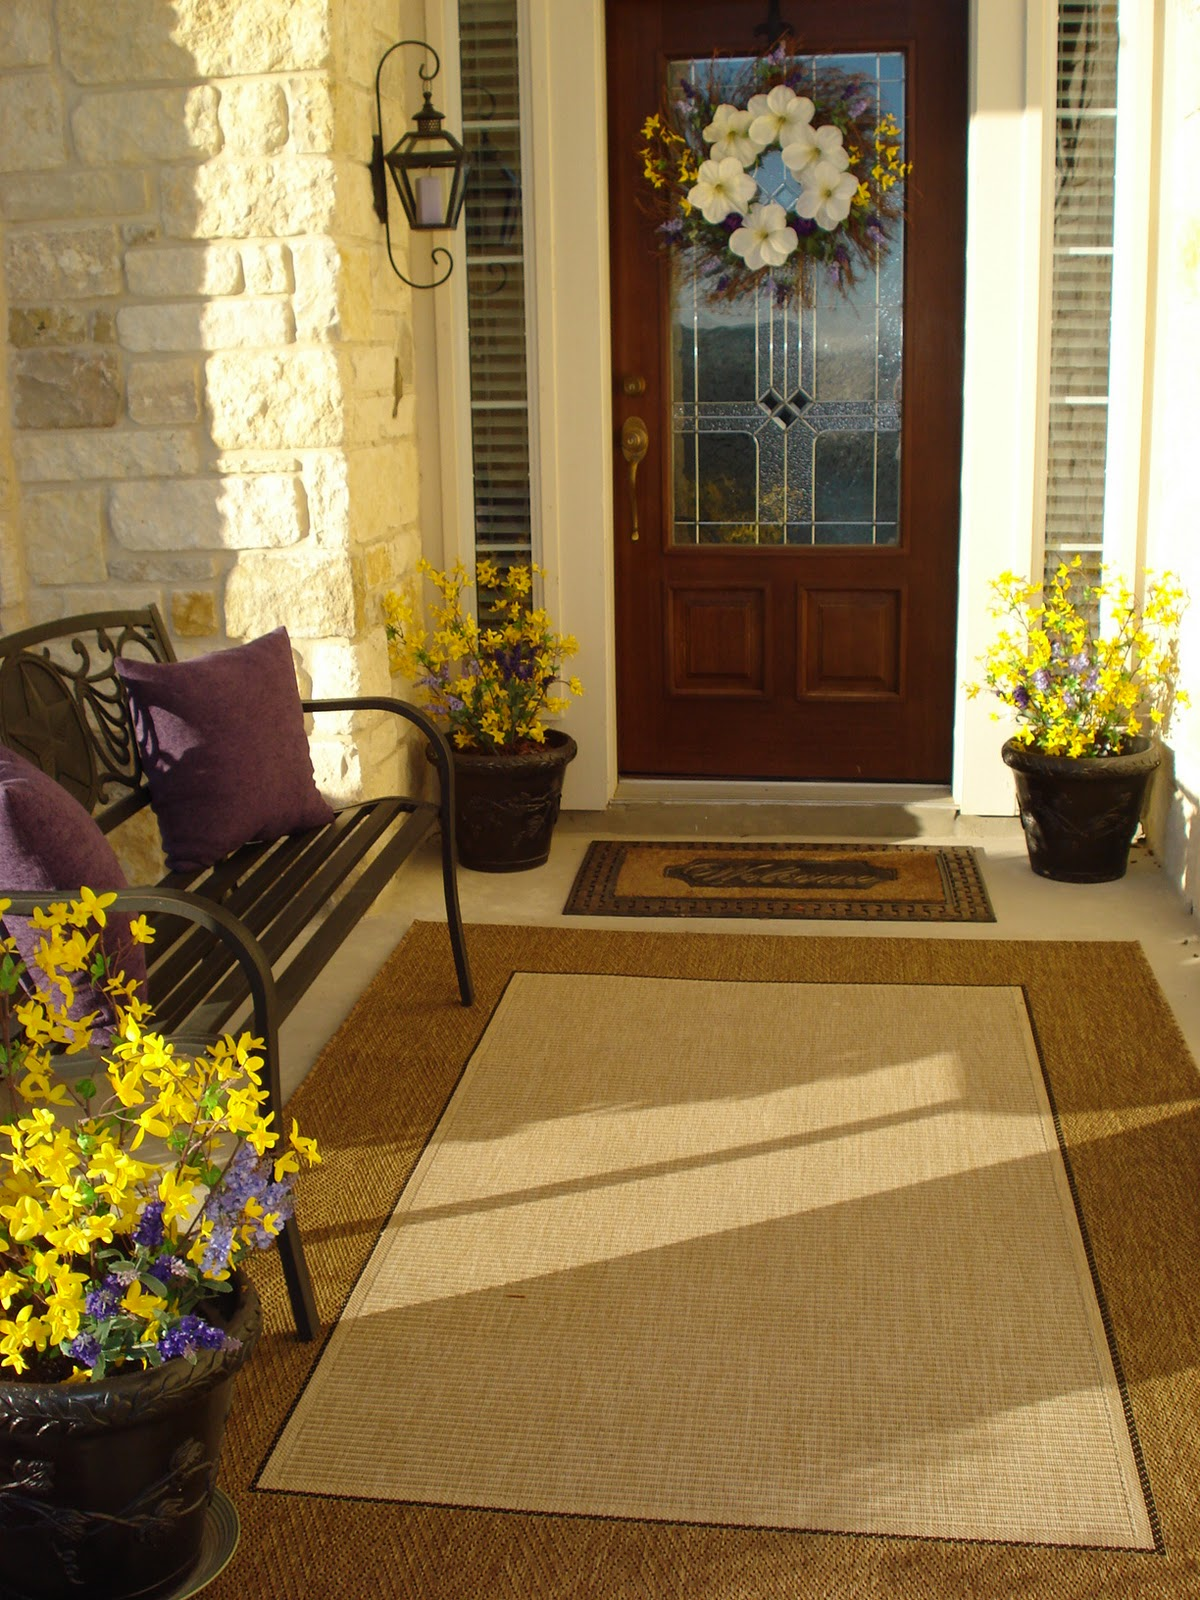 Our home away from home front porch decor for different for Decorating outdoor entryways